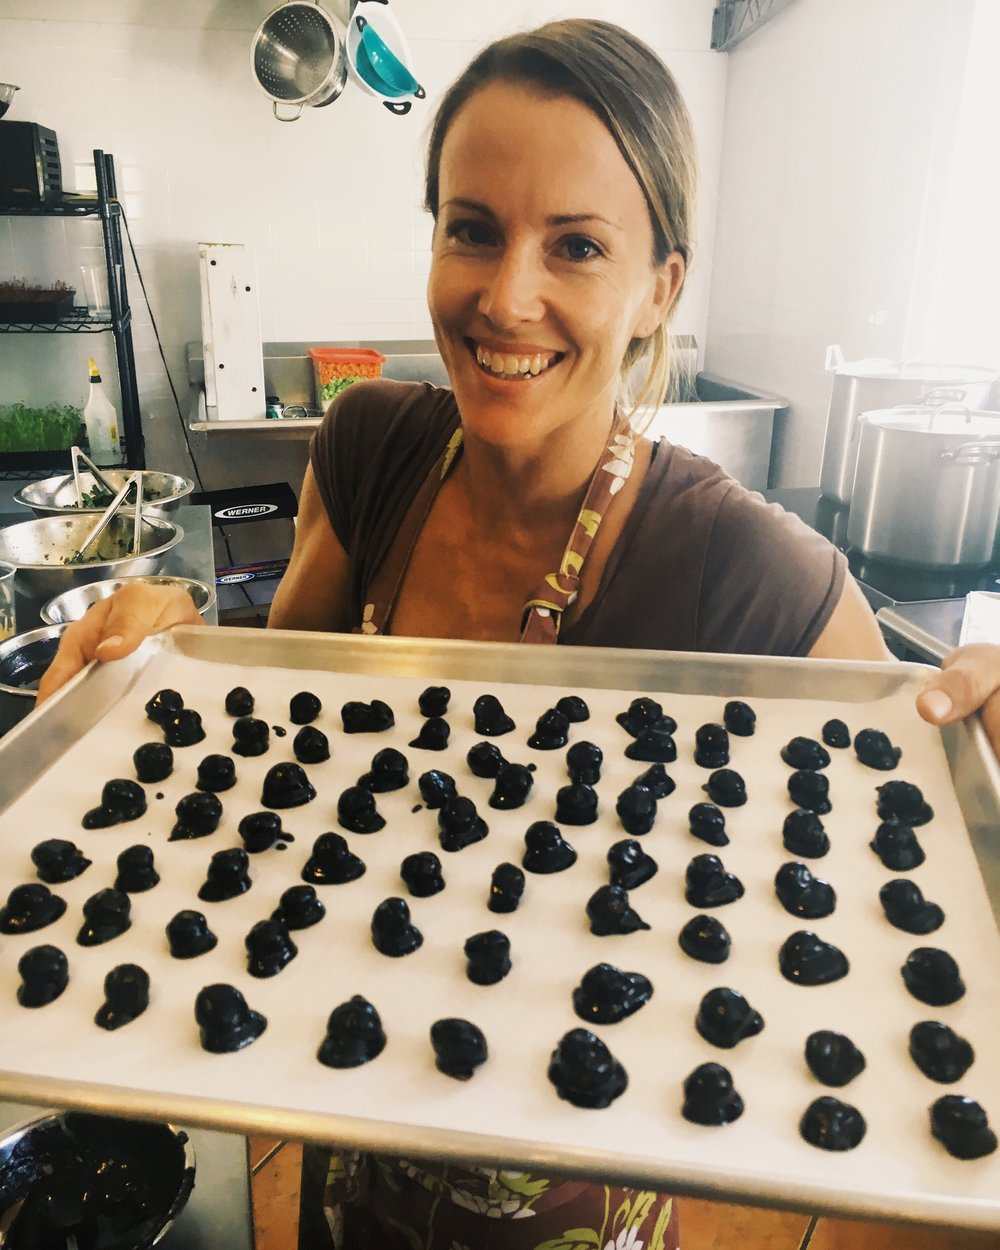 kitchen chef - lindsay - with chocolate covered macadamia nuts